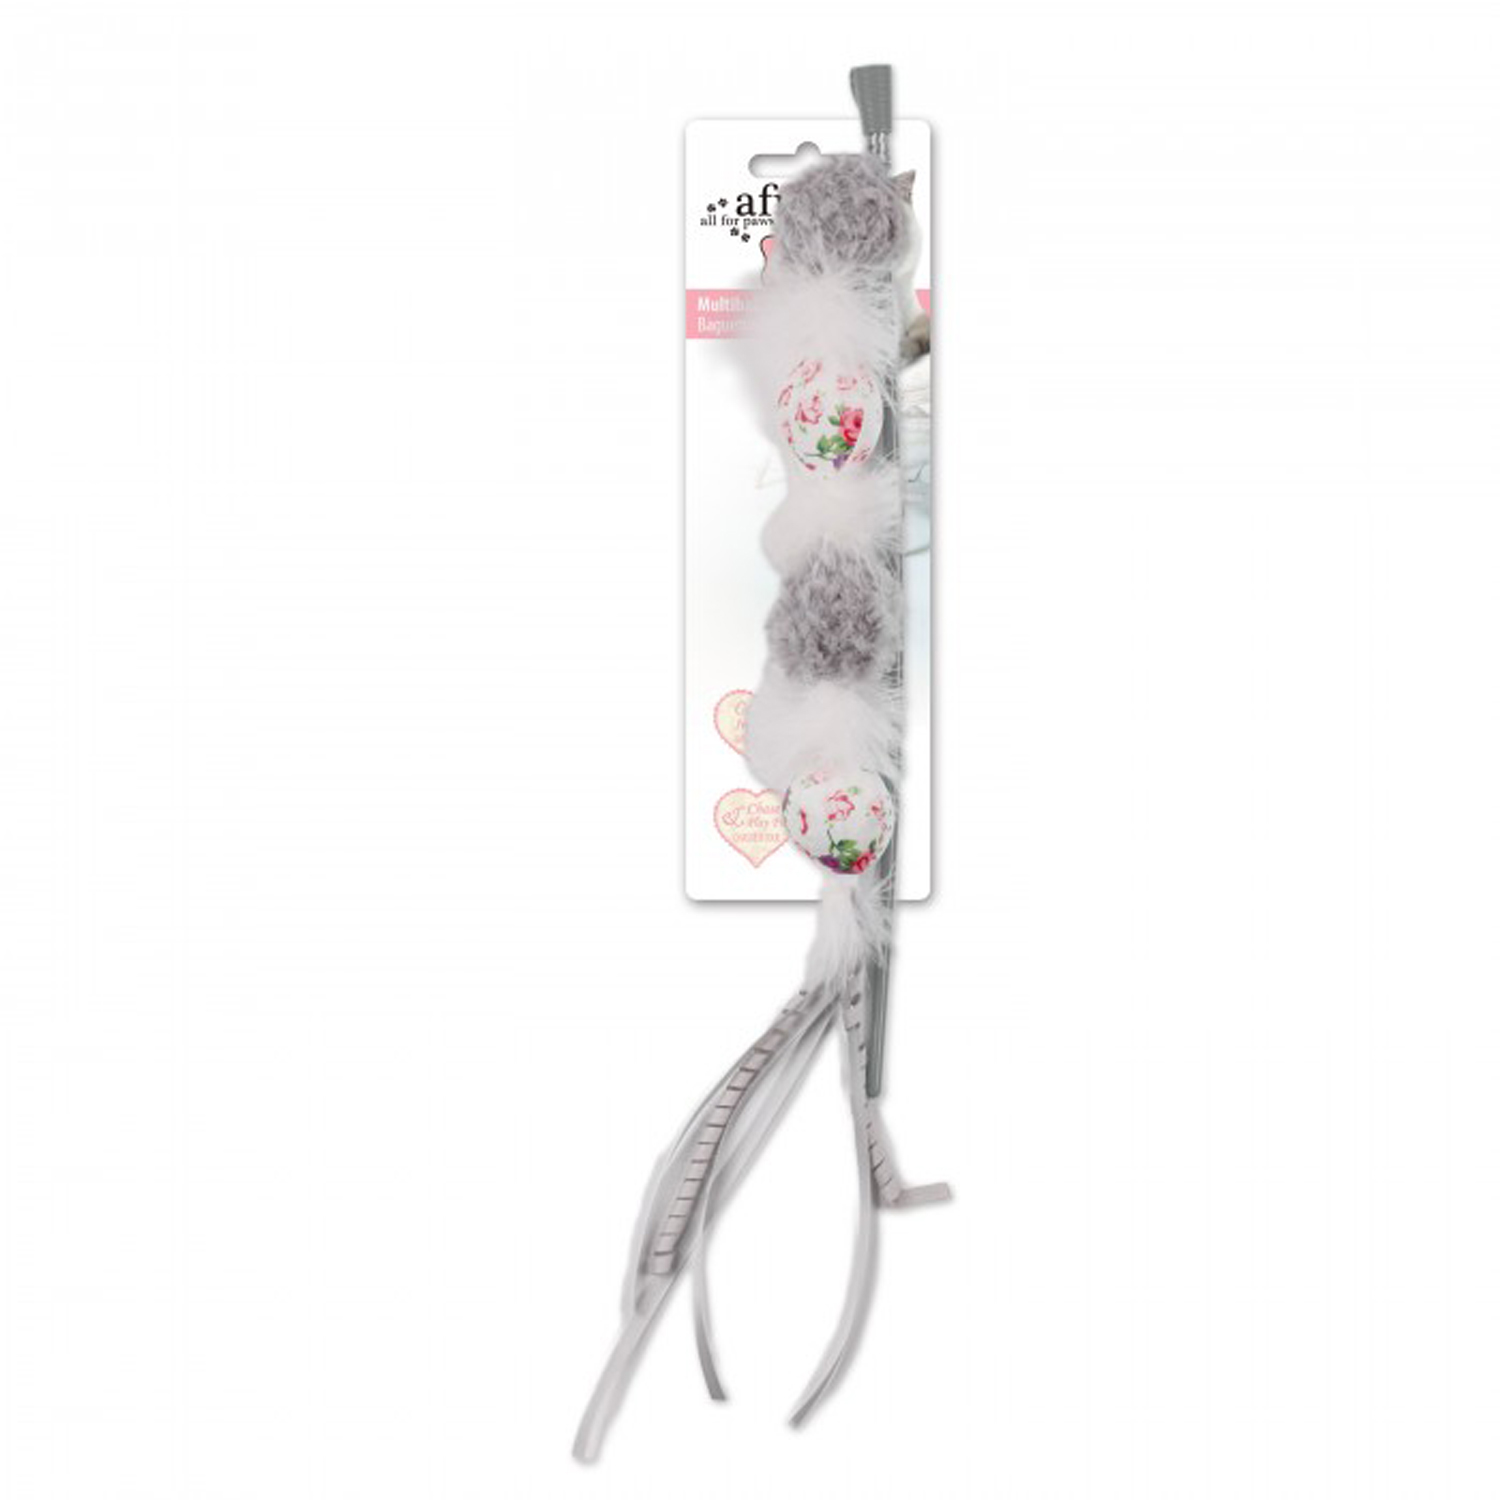 Shabby chic multiball wand cat toy gray with same day shipping baxterboo - Shabby chic wand ...